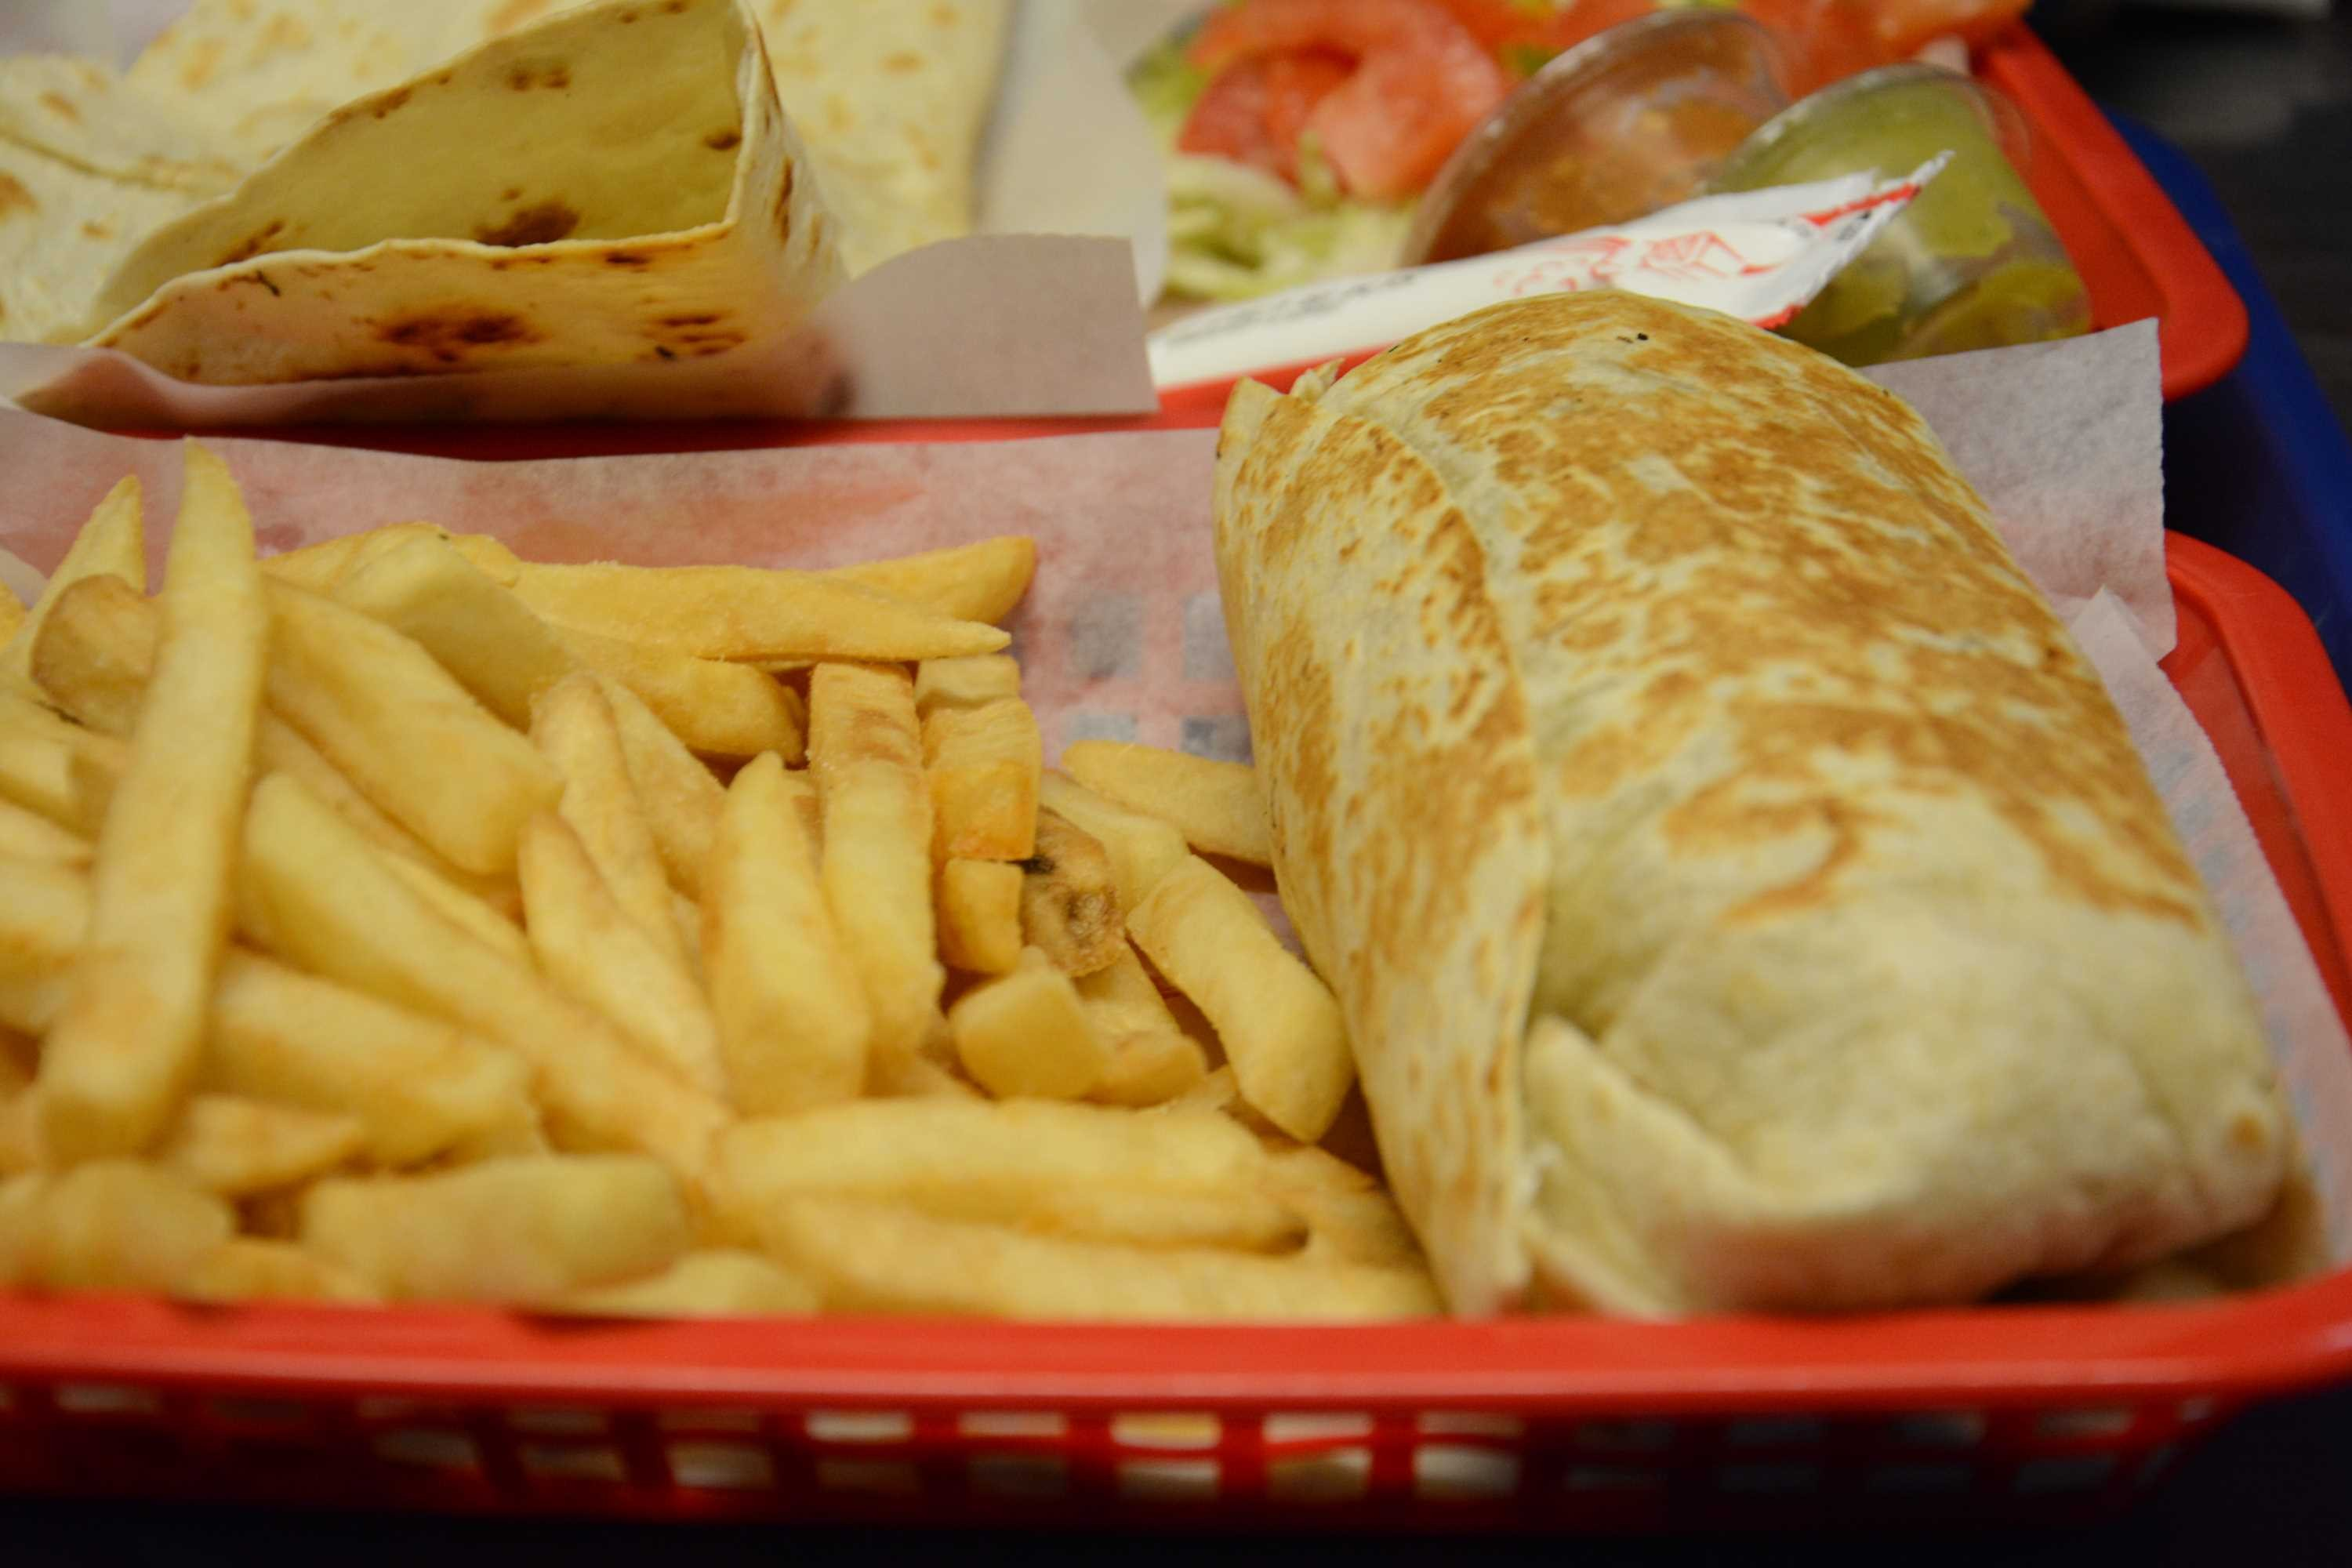 Burrito with Fries